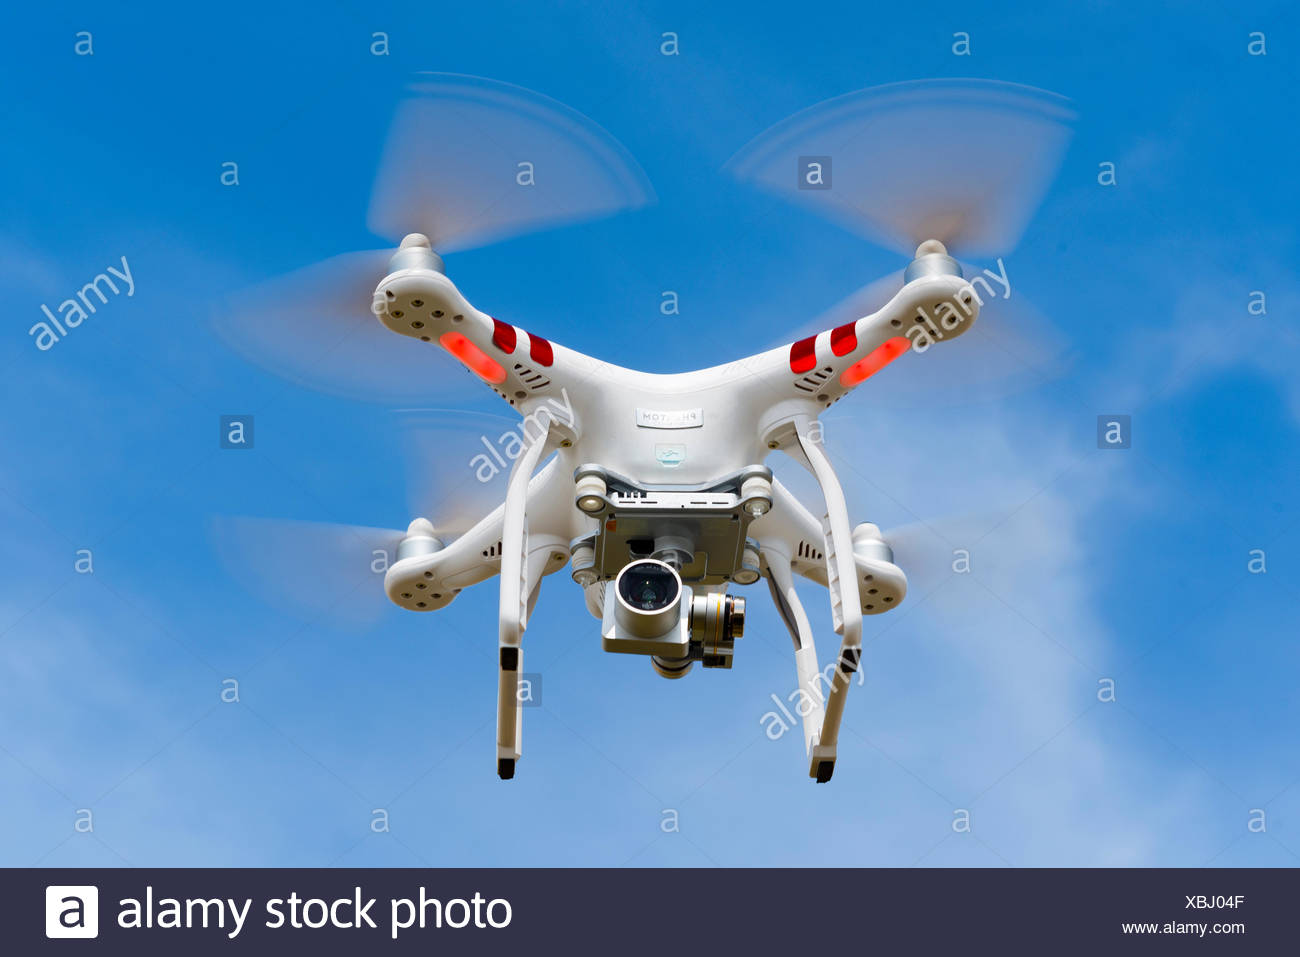 Quadrocopter, drone, with camera flying against a blue sky, DJI Phantom 3 - Stock Image